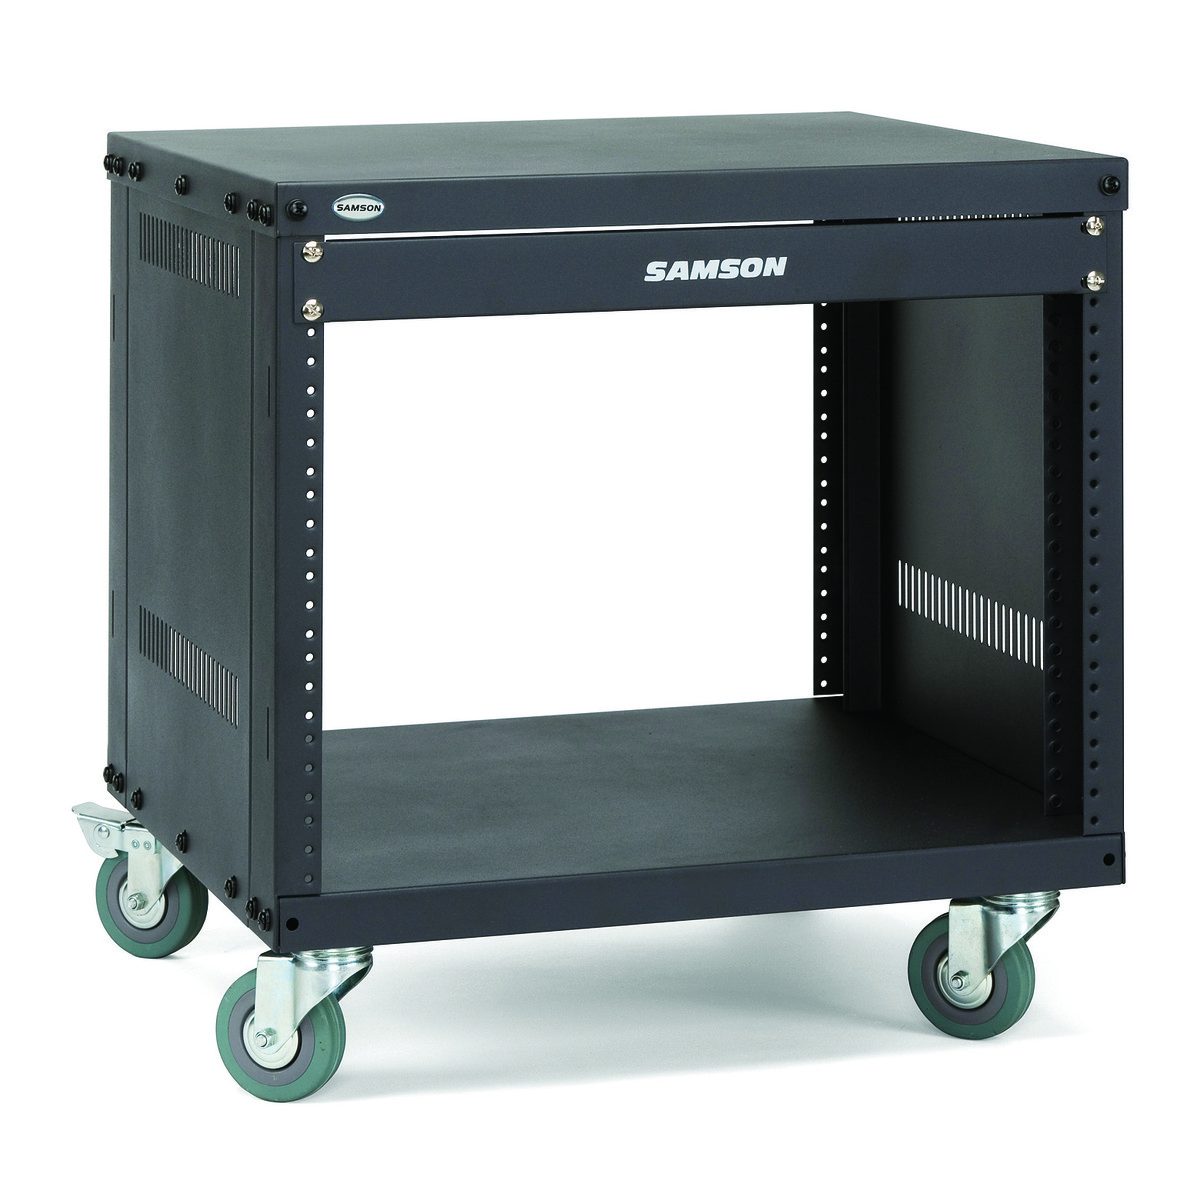 span samson equipment srk rack quot with wheels